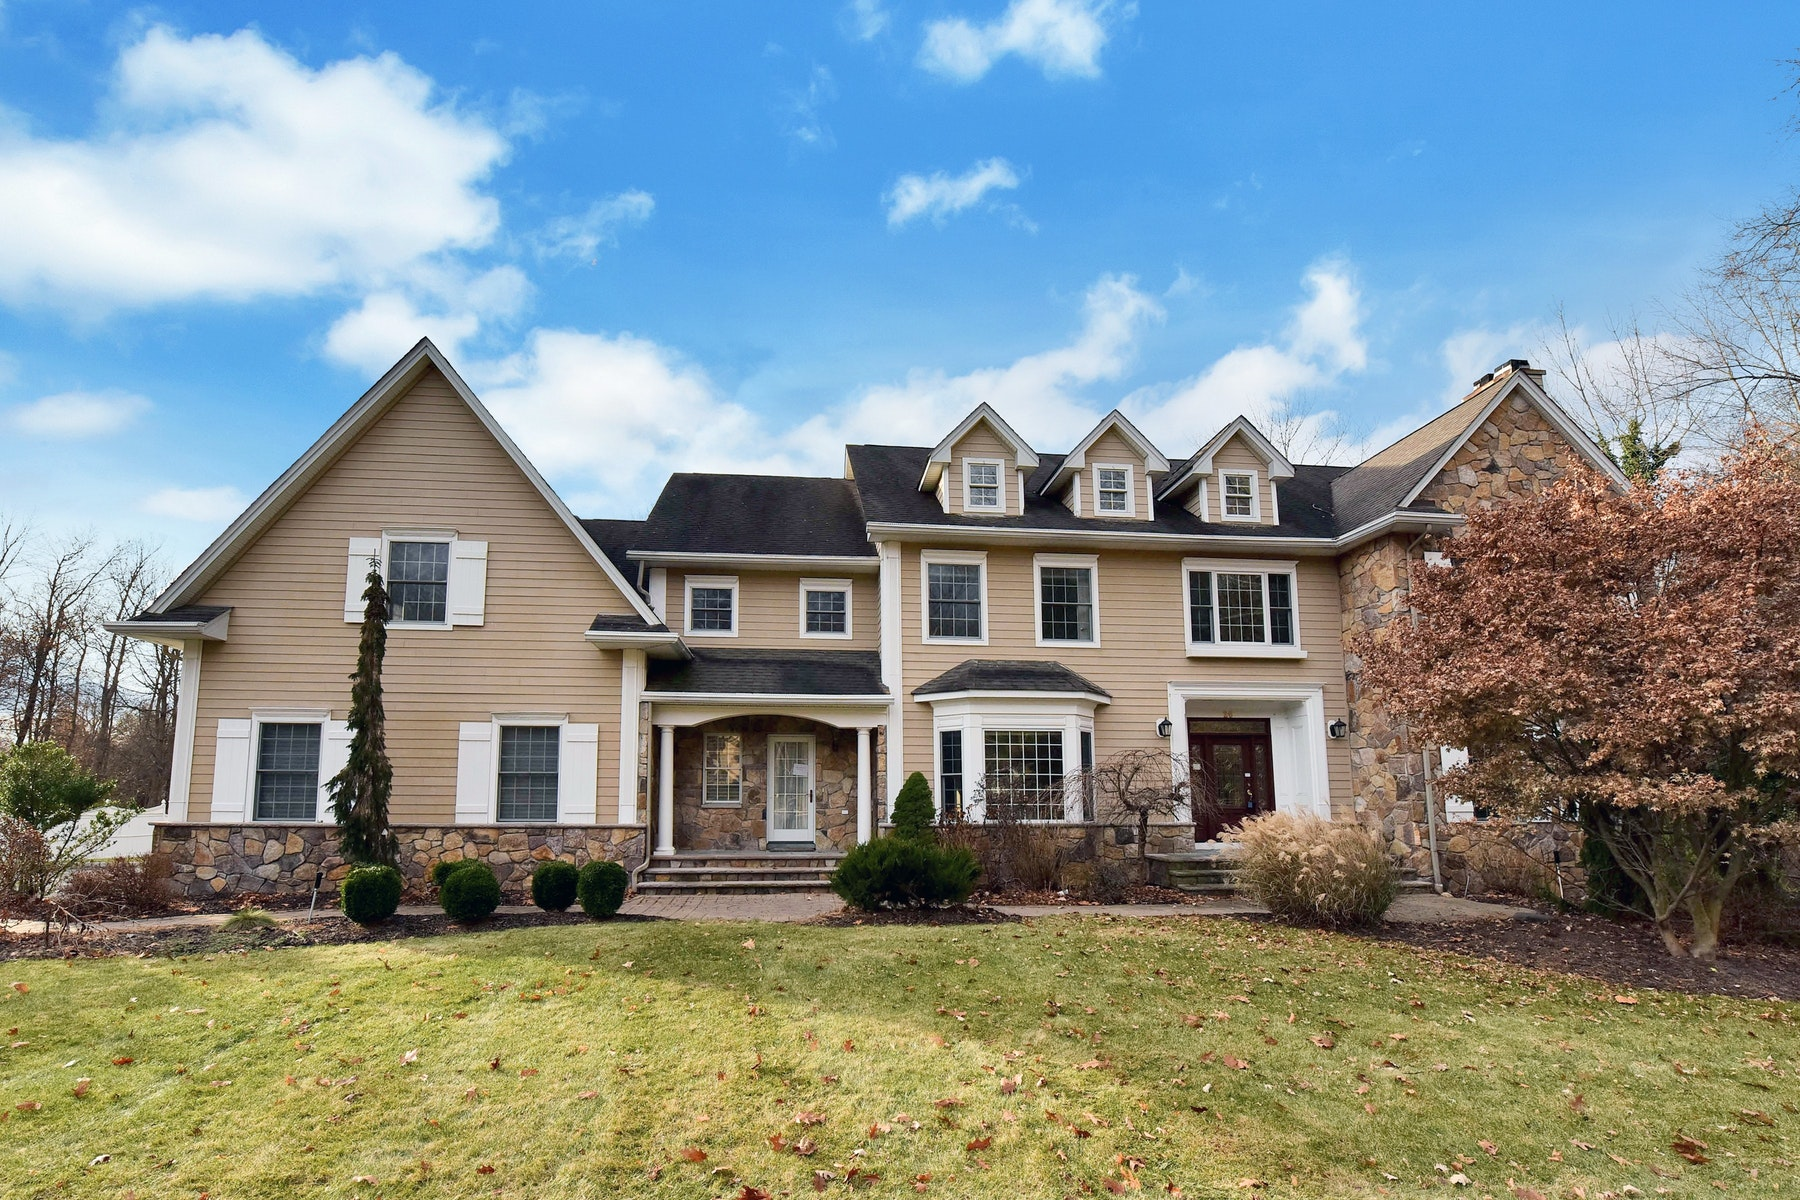 Single Family Home for Sale at Gracious Colonial 26 Old Stone Church Rd, Upper Saddle River, New Jersey, 07458 United States